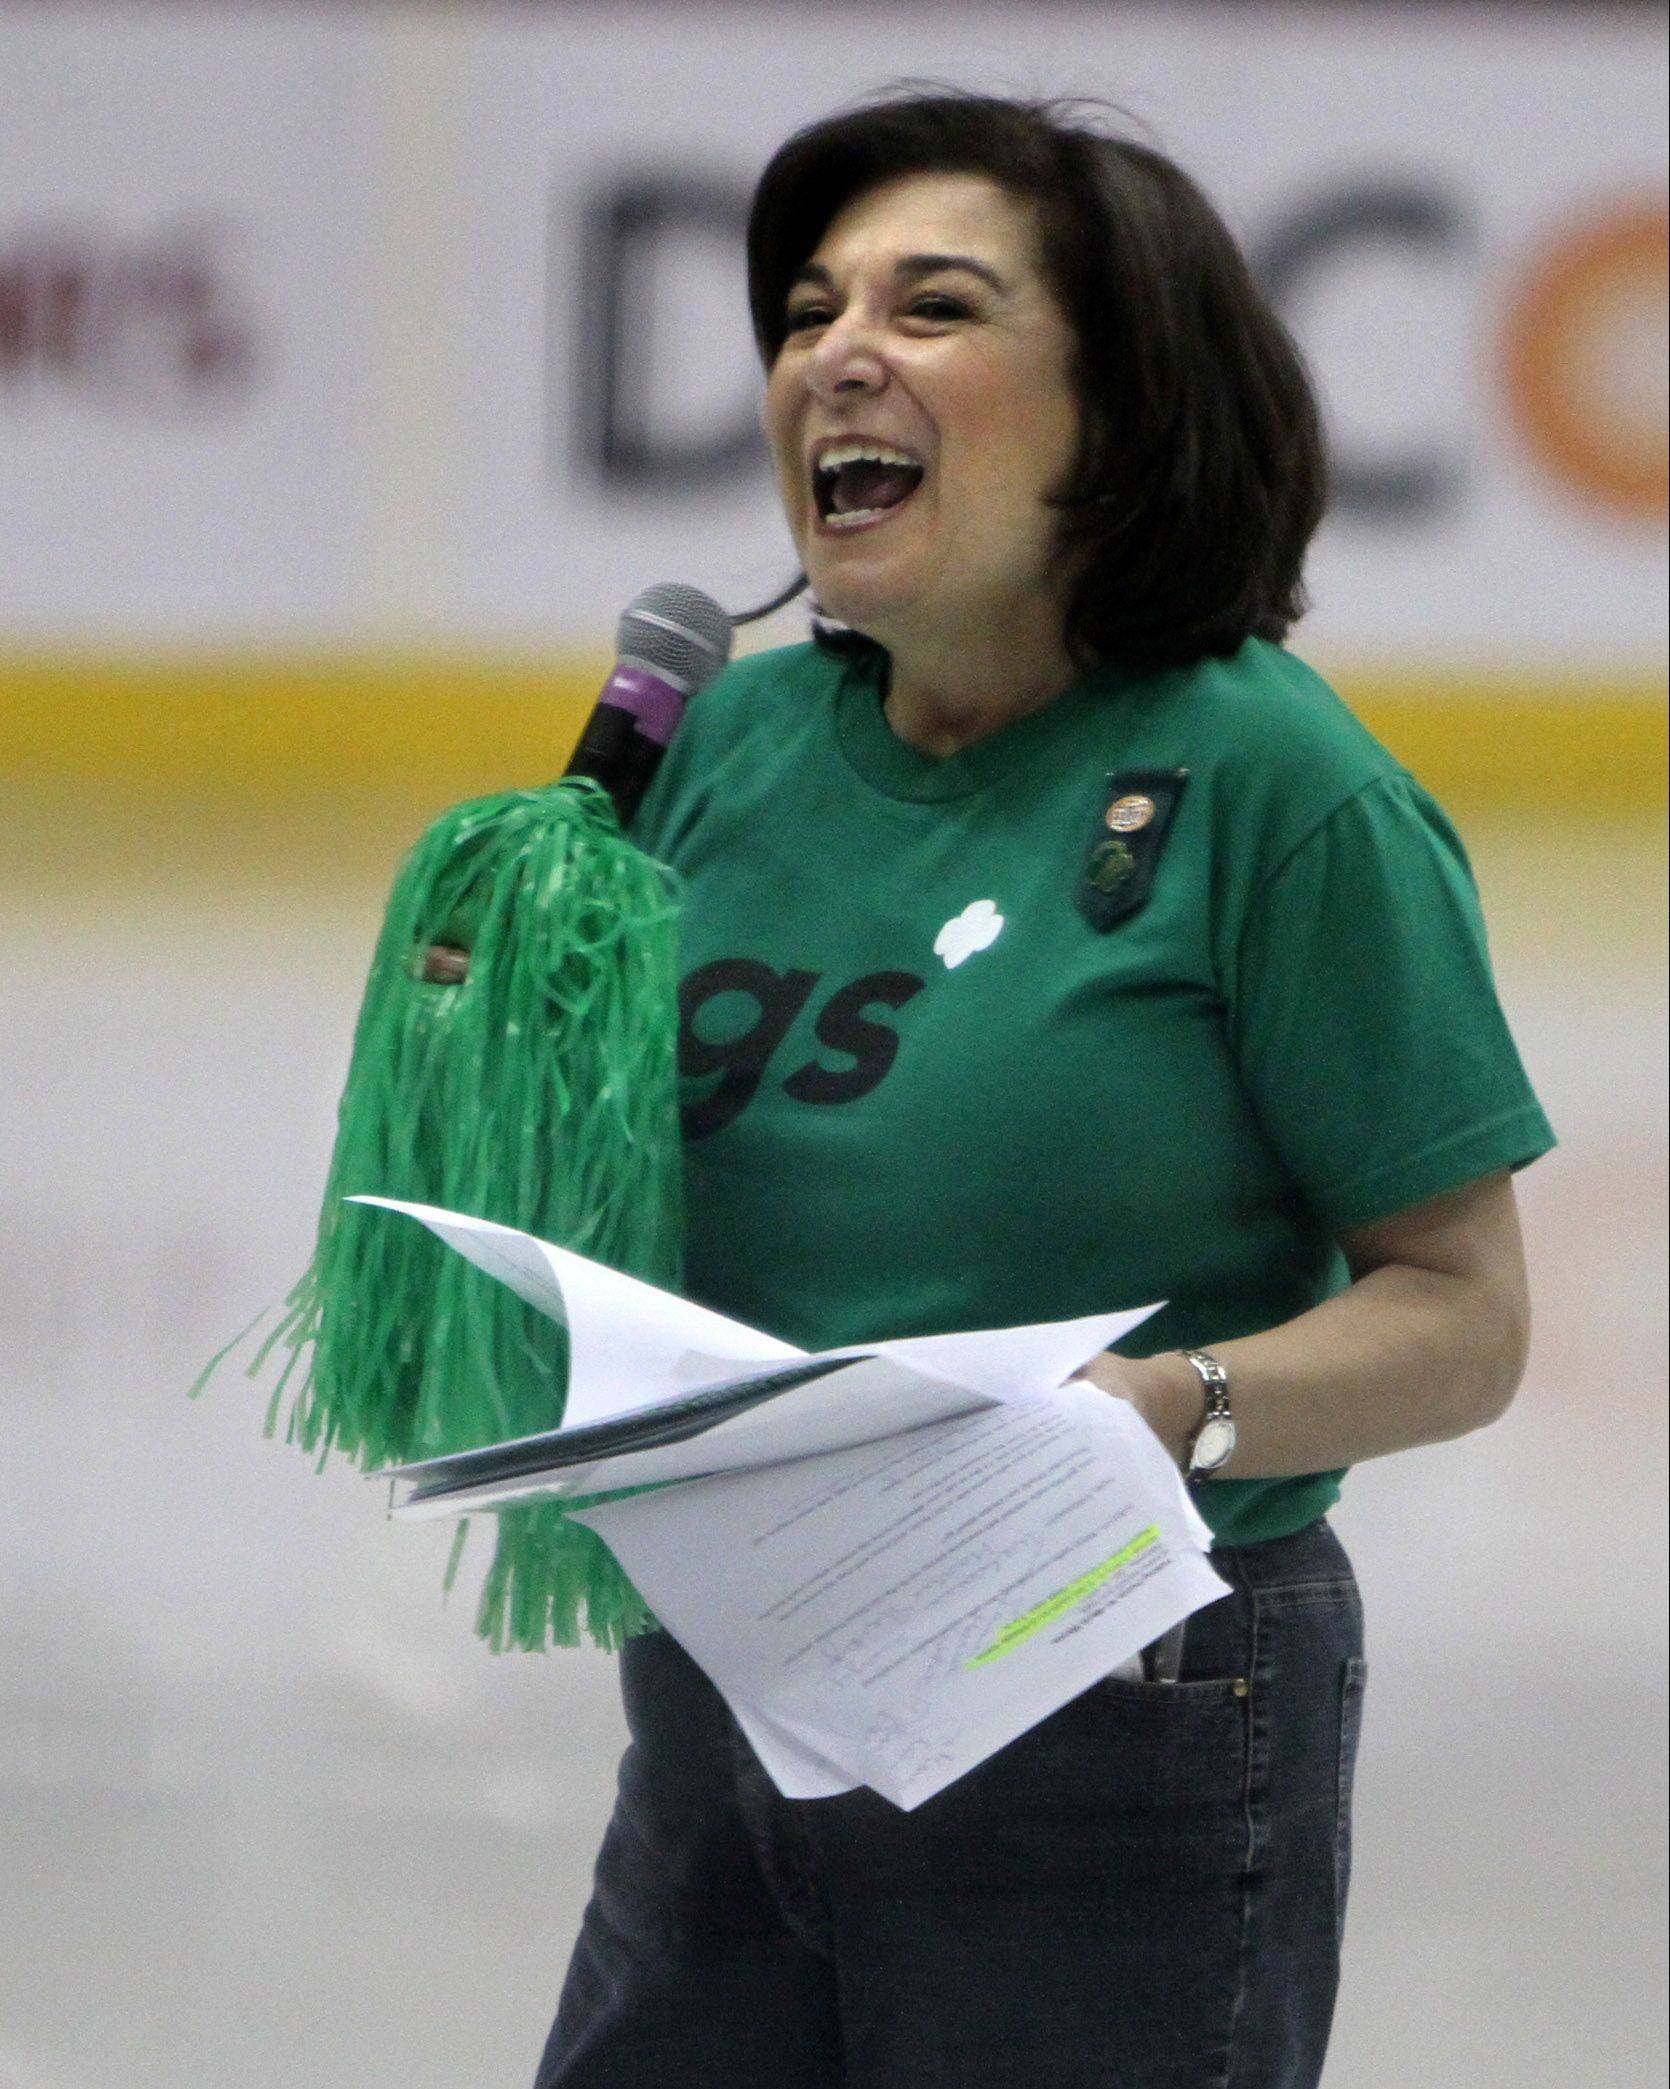 Maria Wynne, CEO of Girl Scouts of Greater Chicago and Northwest Indiana, leads a pep rally for about 6,000 Girl Scouts and their families at Allstate Arena in Rosemont in 2011.